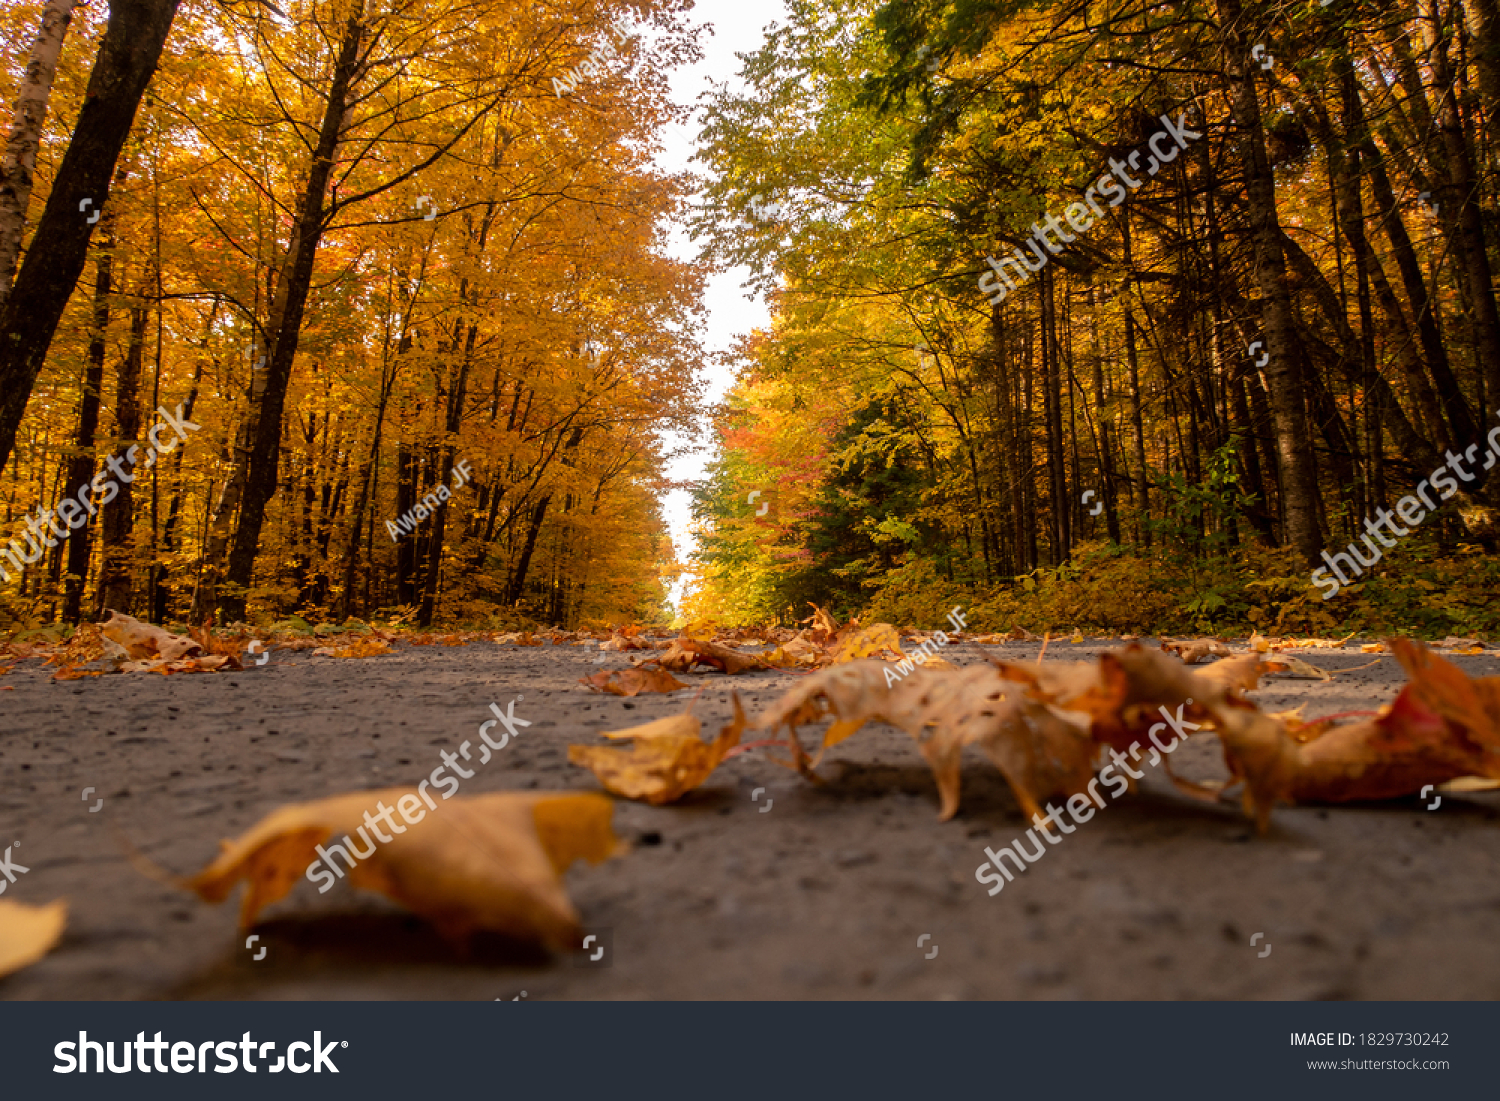 stock-photo-autumnal-view-of-fallen-leav